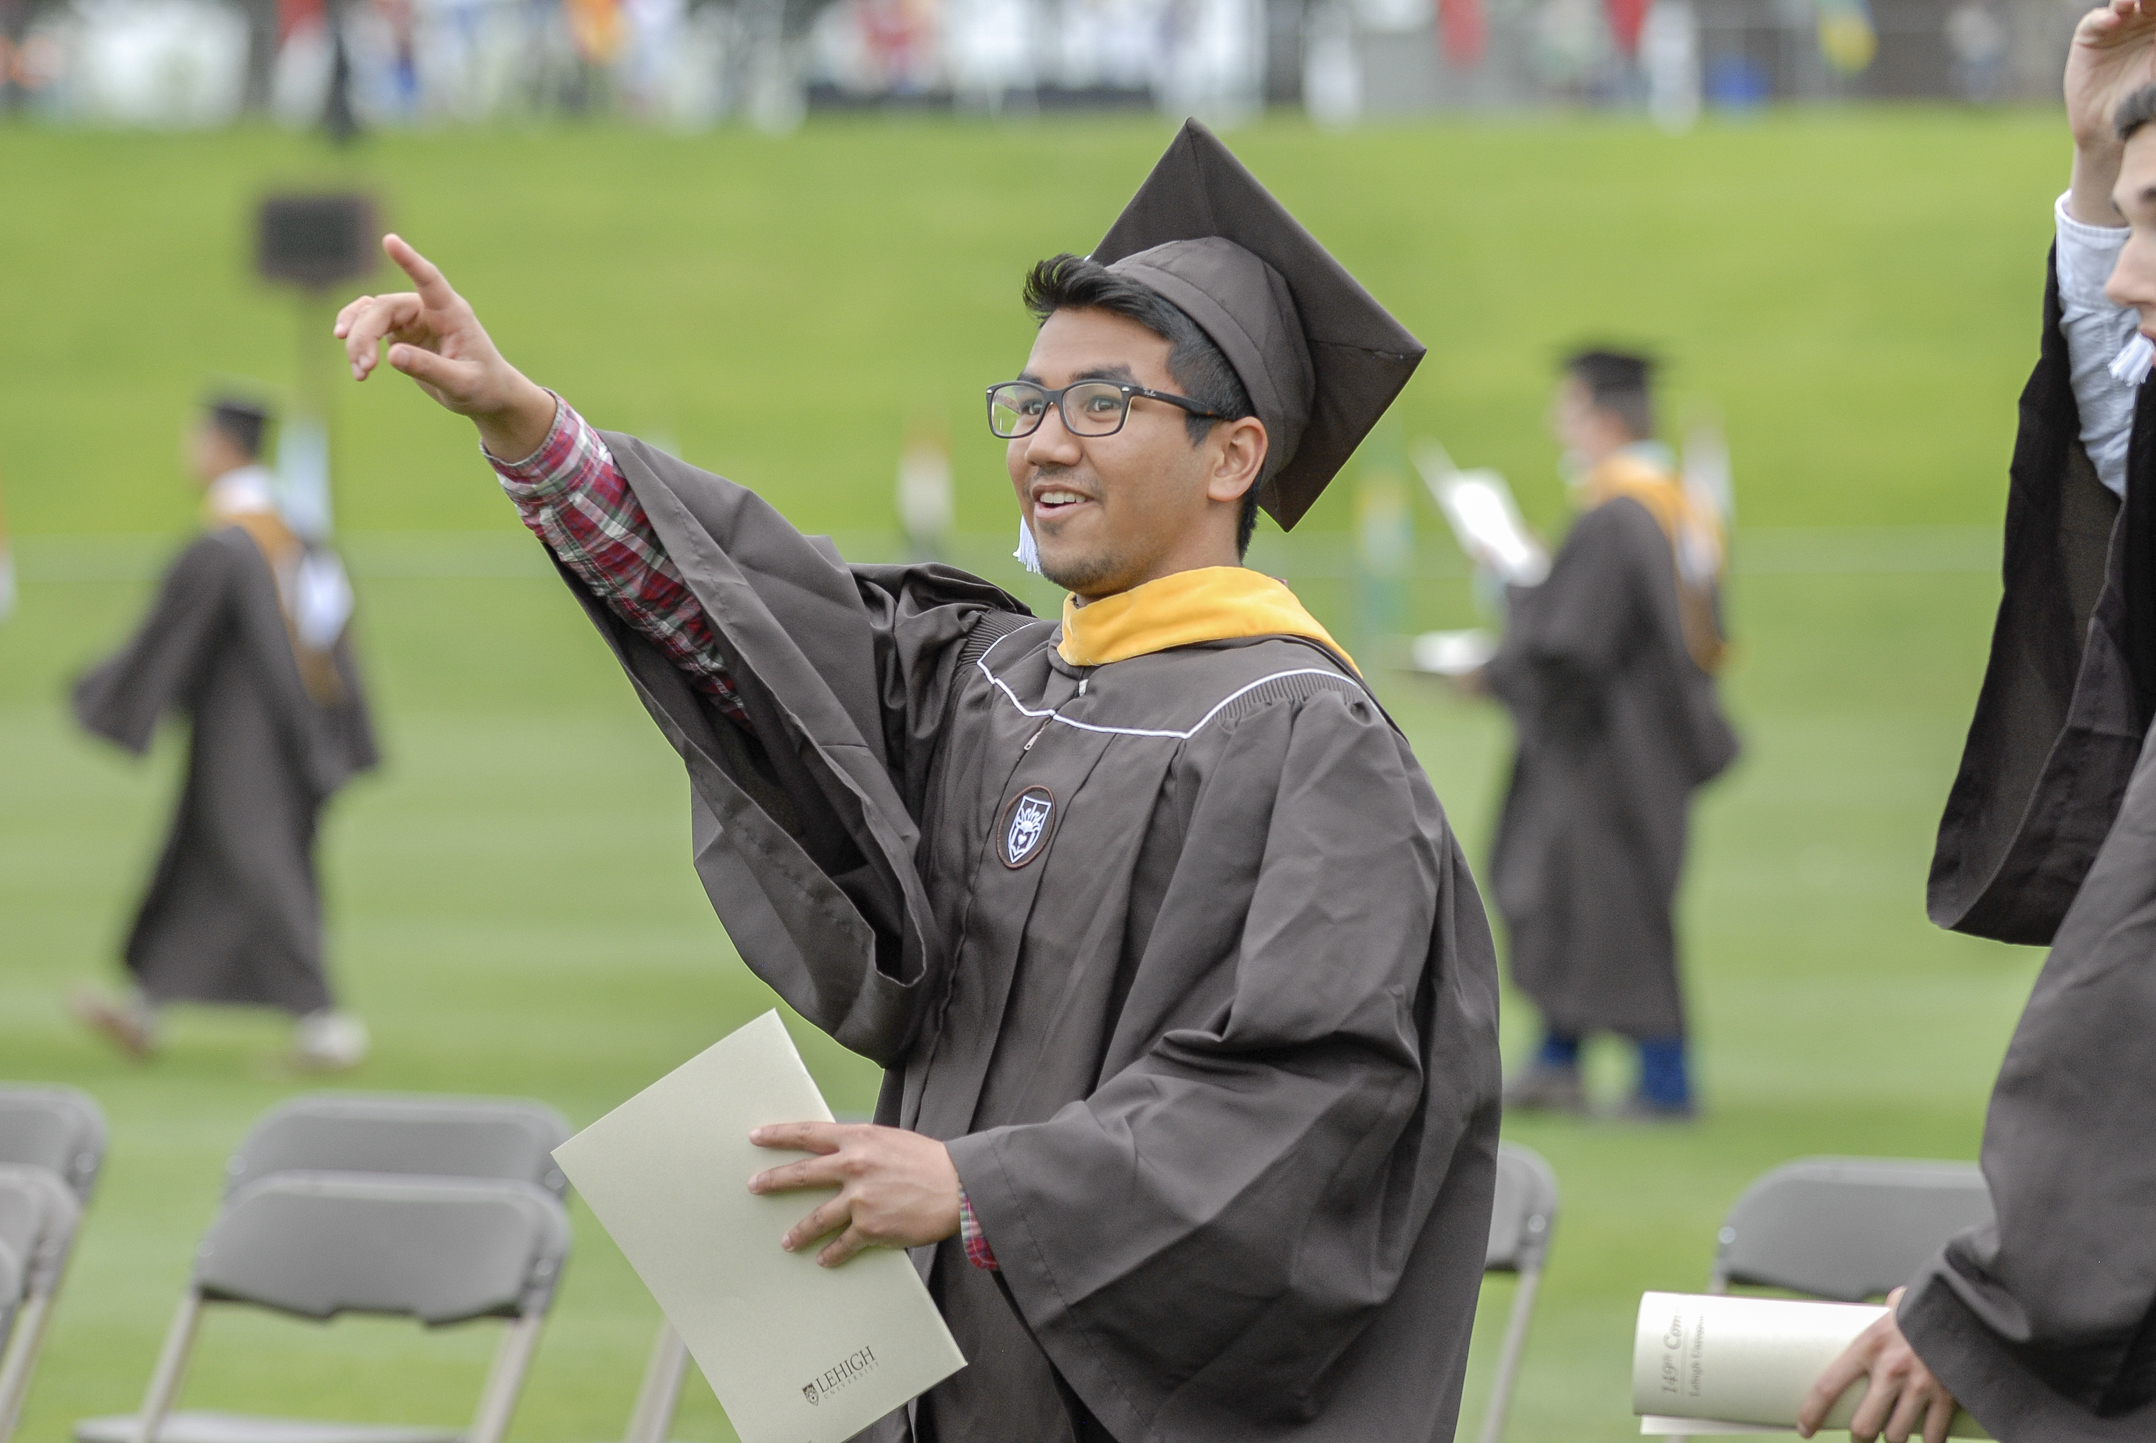 Jayesh Chokshi, '17, points to the audience Monday, May 22, 2017, in Goodman Stadium. Chokshi is a materials science and engineering graduate. (Roshan Giyanani/B&W Staff)